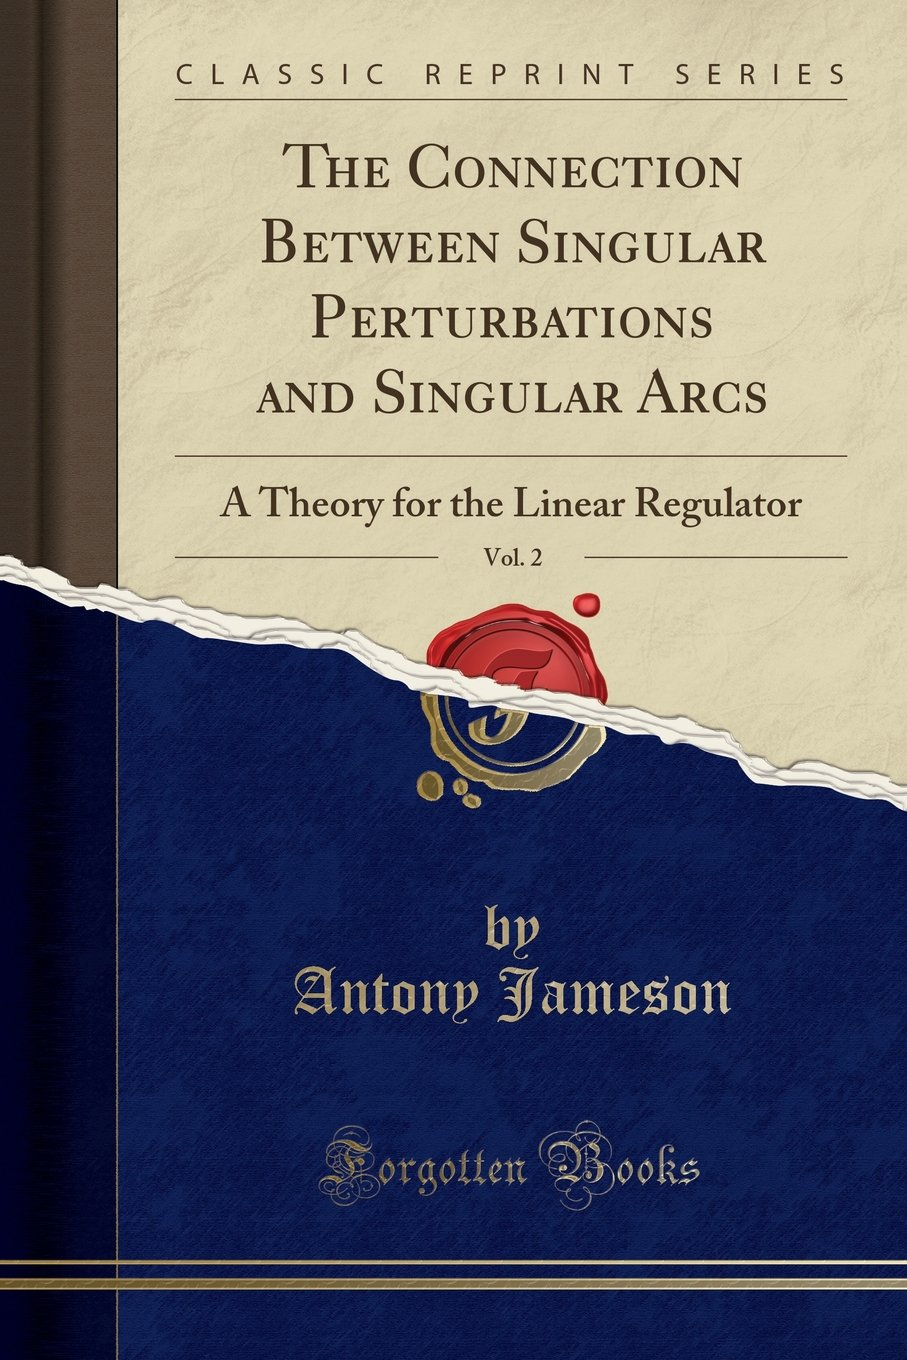 Read Online The Connection Between Singular Perturbations and Singular Arcs, Vol. 2: A Theory for the Linear Regulator (Classic Reprint) pdf